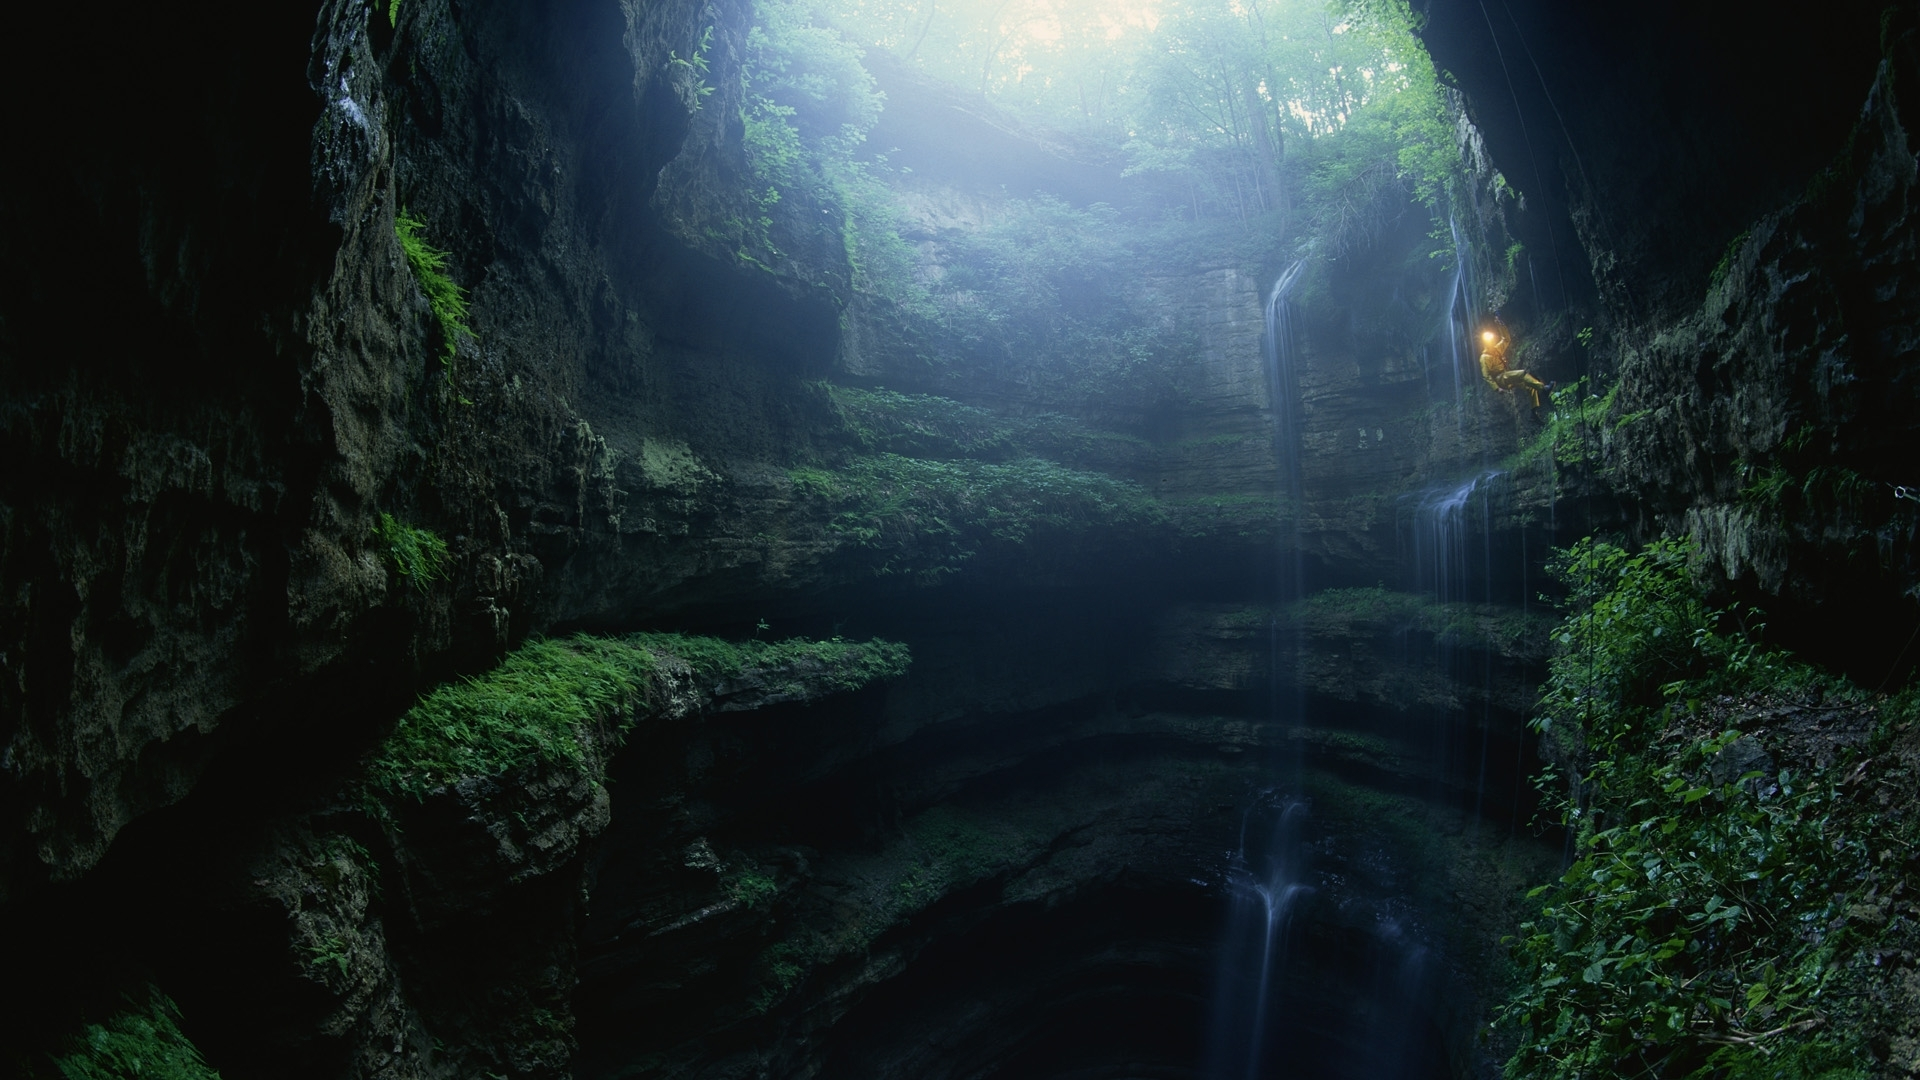 29471 download wallpaper Landscape, Caves, Waterfalls screensavers and pictures for free